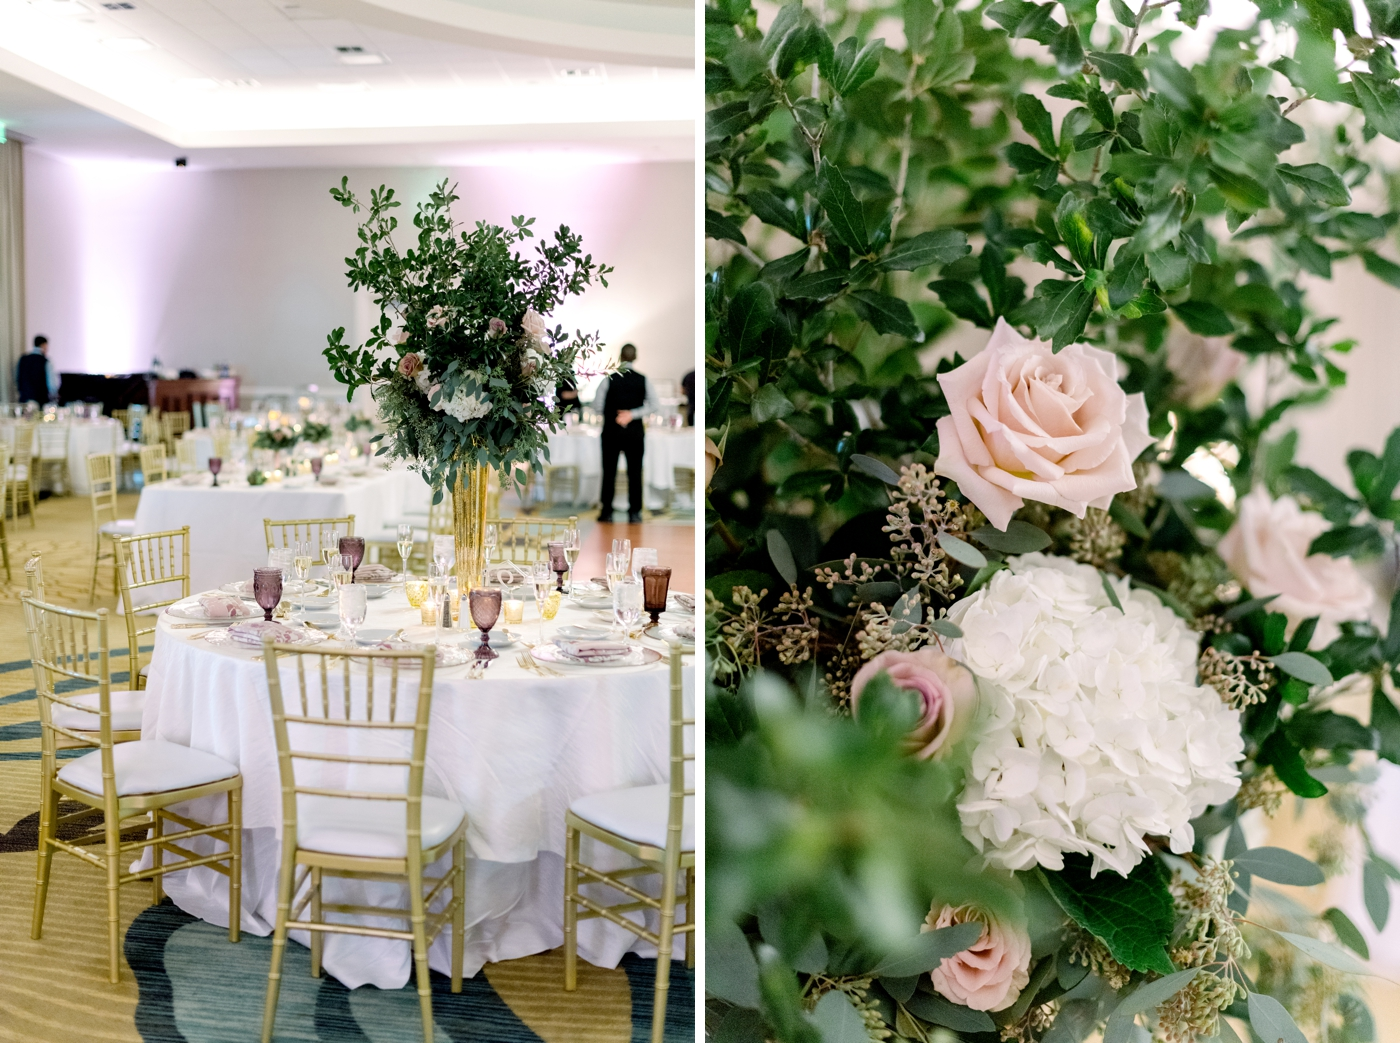 treasury rentals wedding